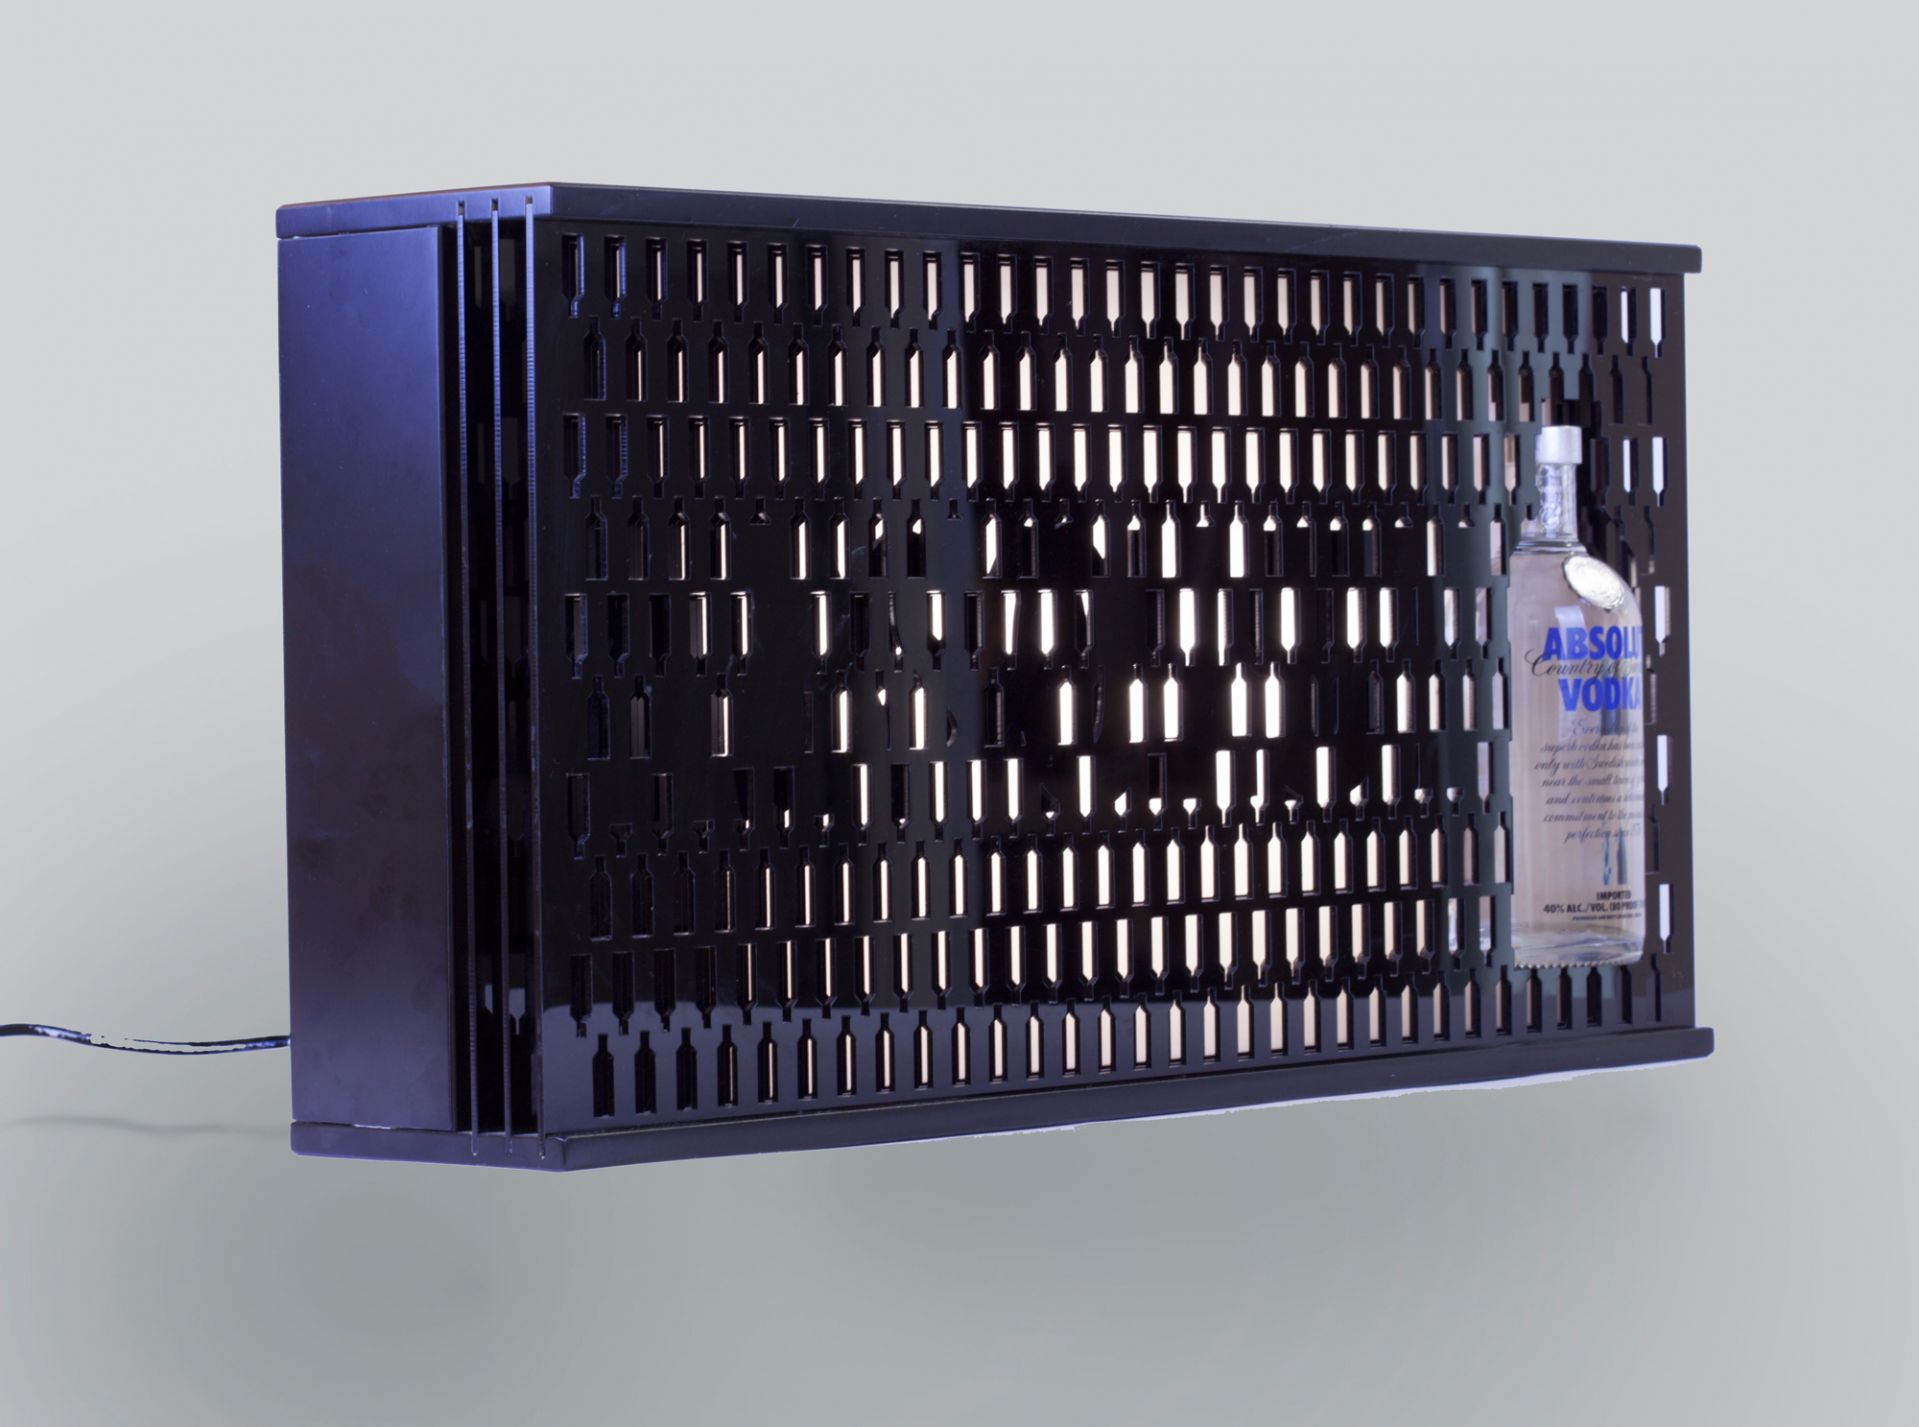 ABSOLUT VODKA Club display case